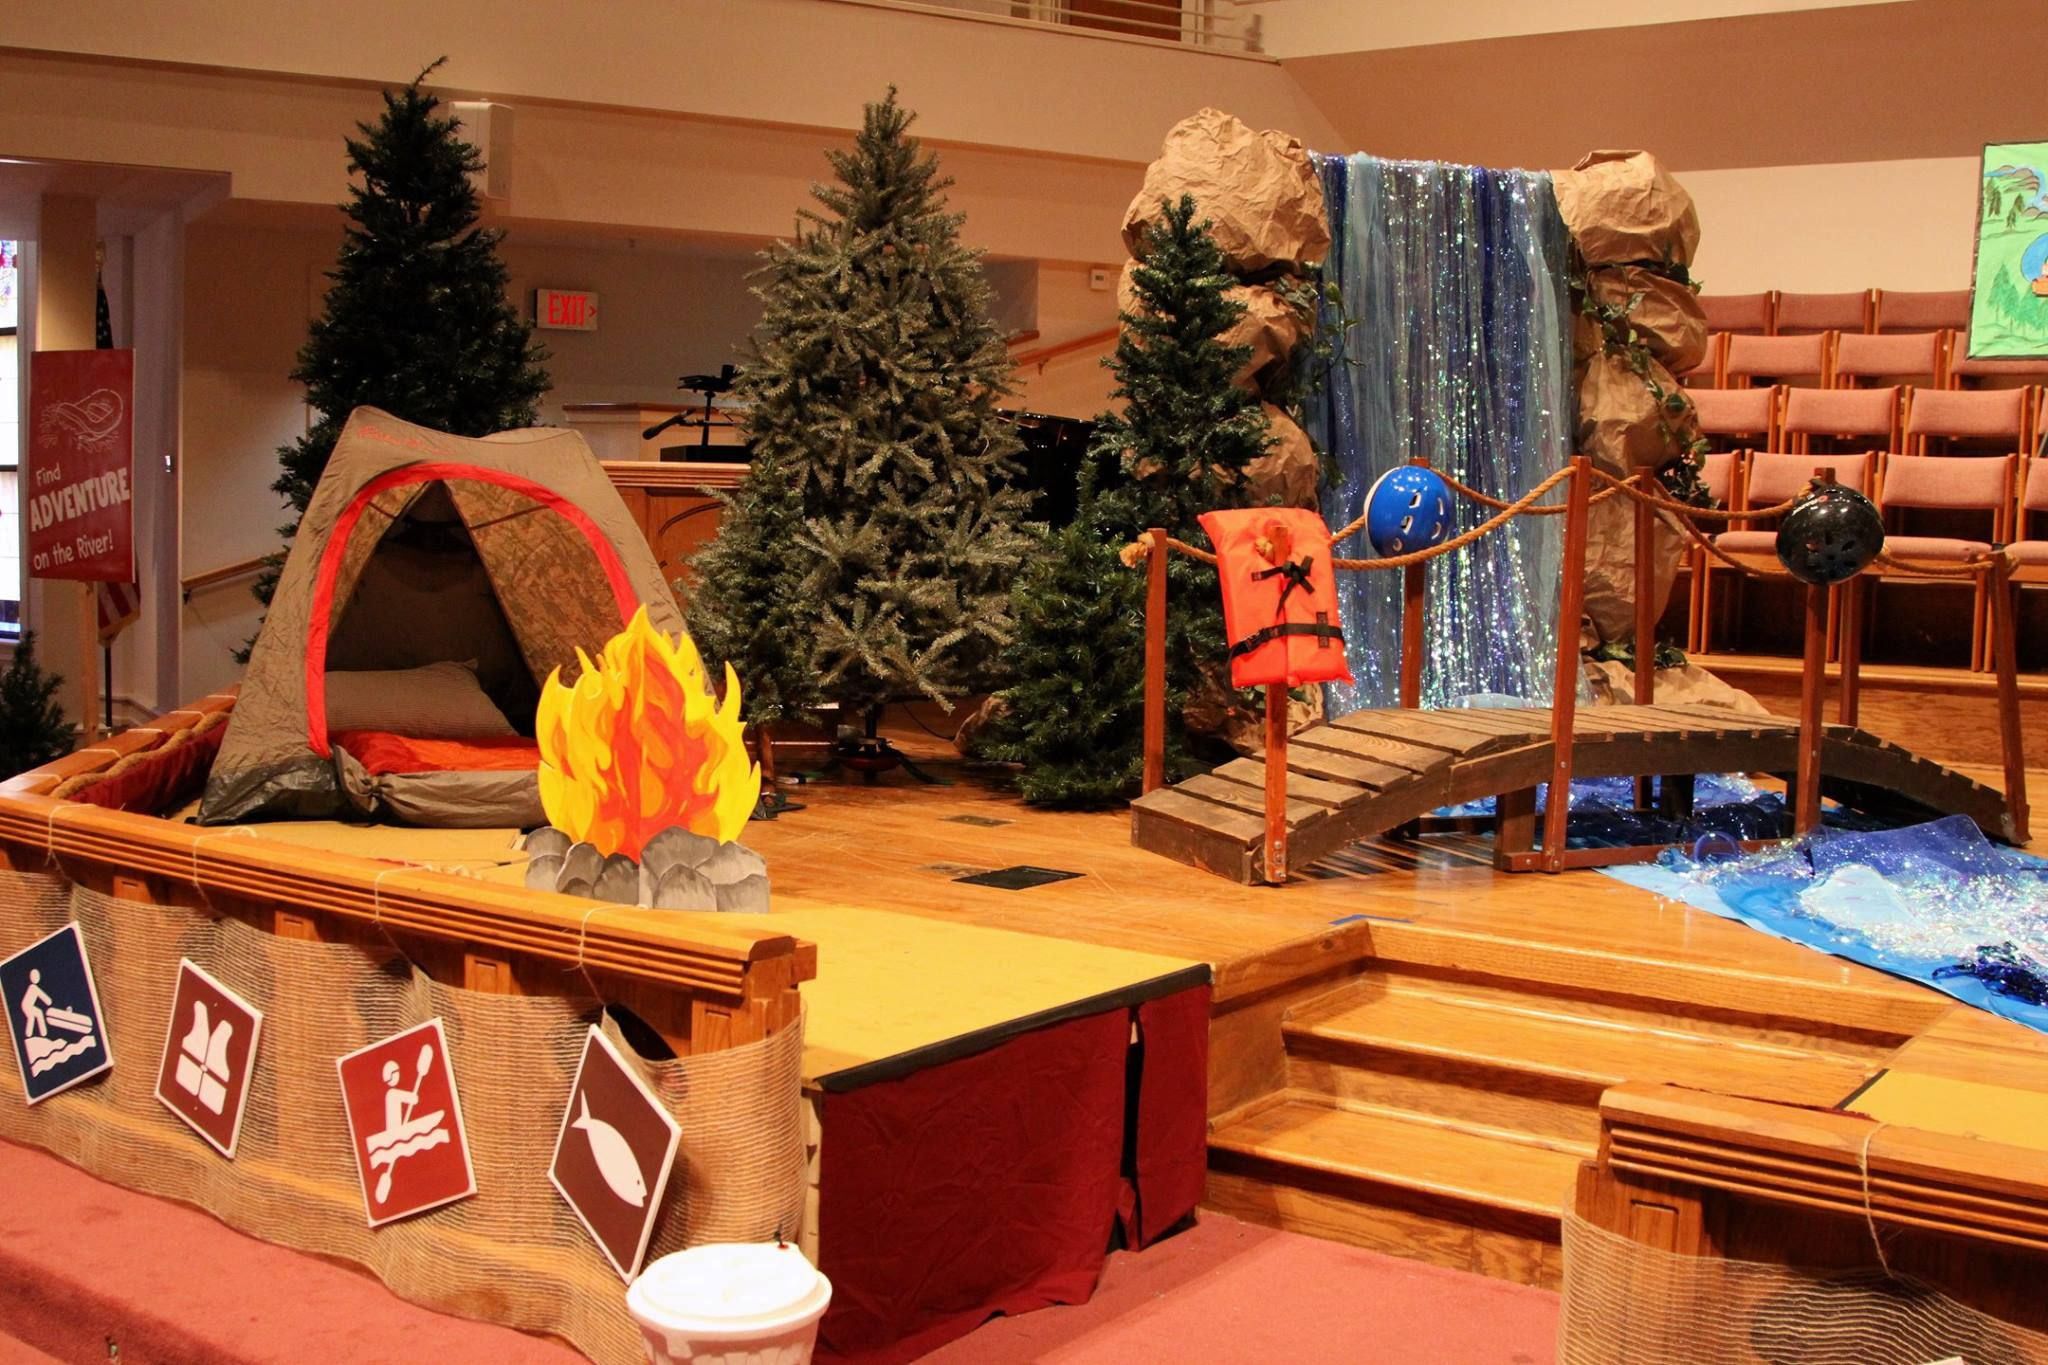 Great Looking Set With The Tent Vest Campfire Scene And